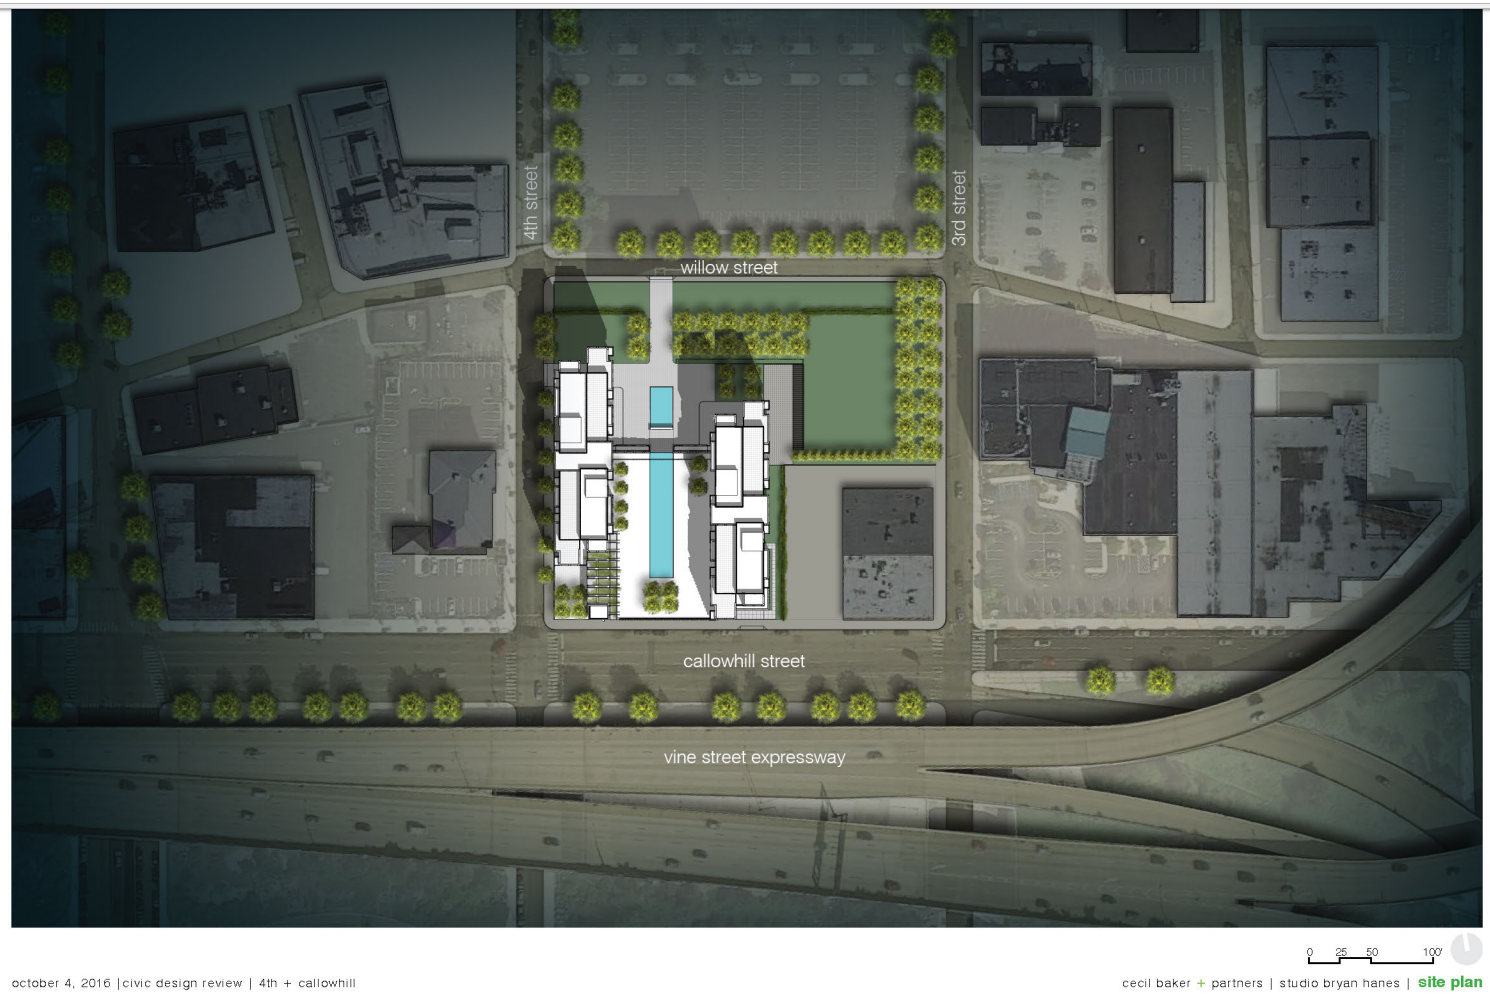 4th + Callowhill: site plan | Cecil Baker, Studio Bryan Hanes - CDR presentation Oct. 2016